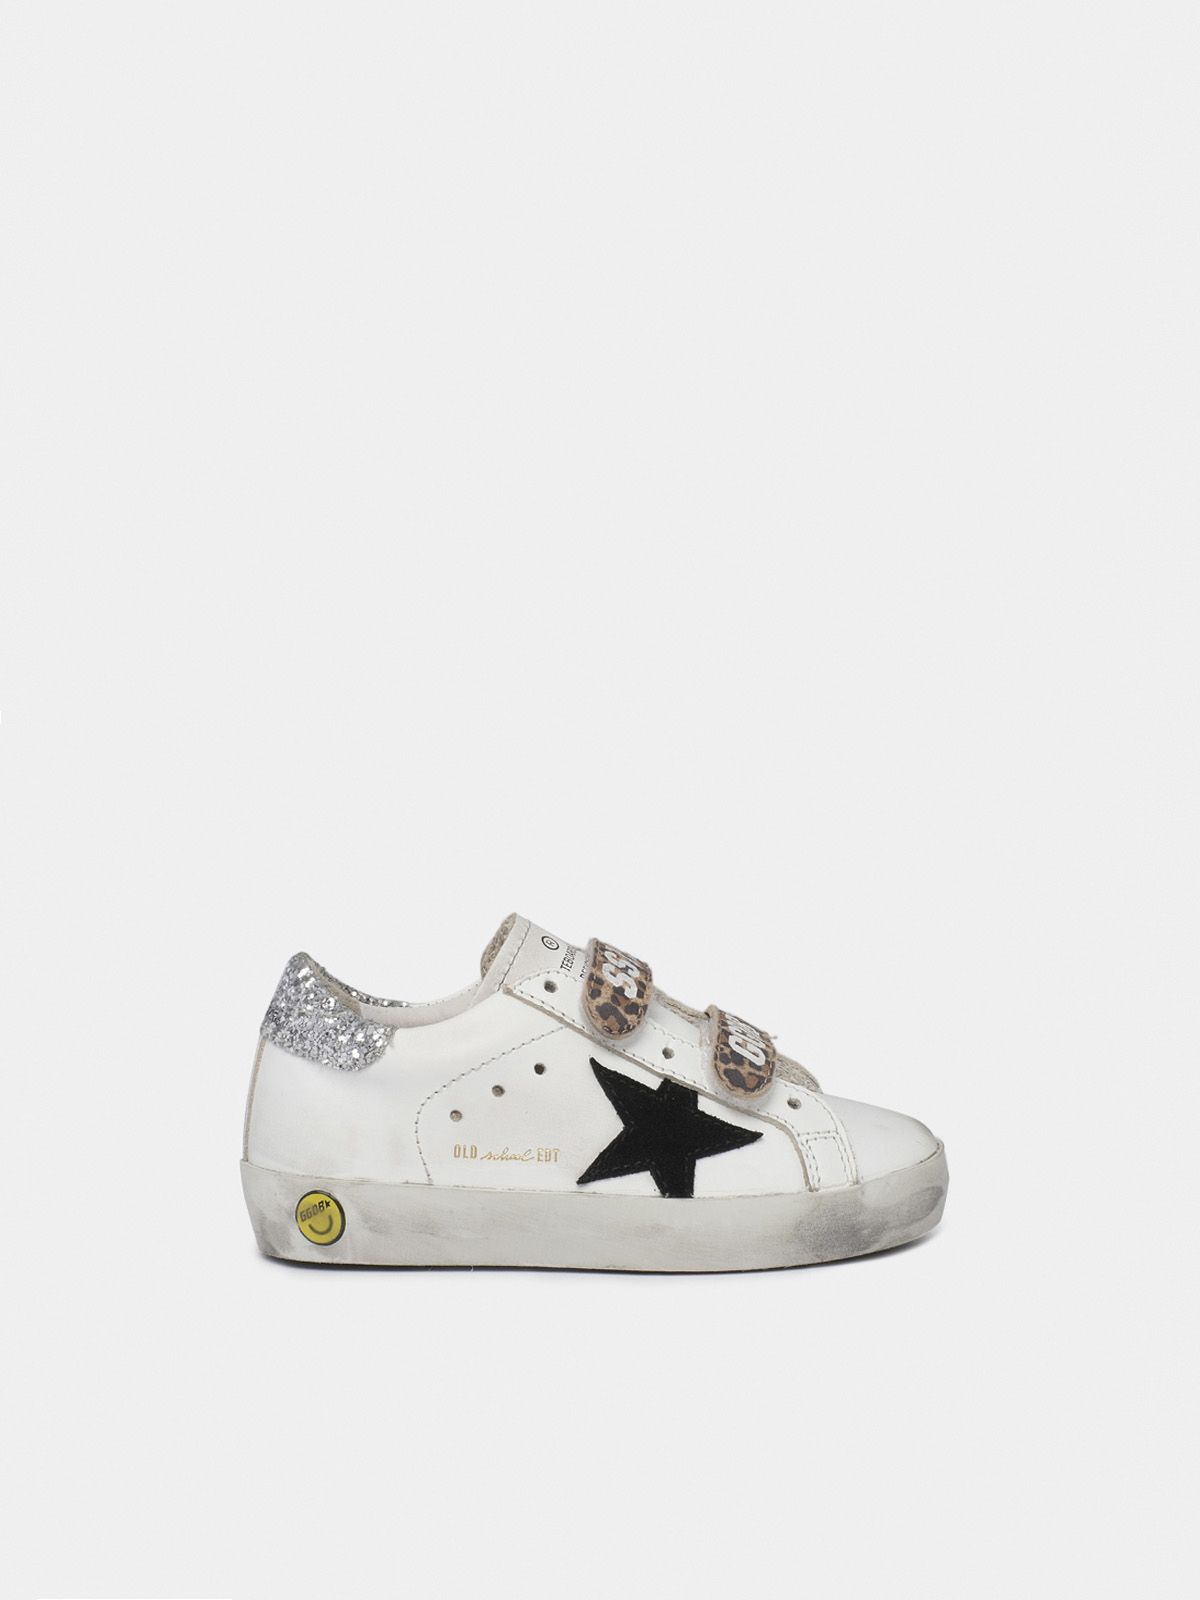 Golden Goose - Sneakers Old School con dettaglio leo e talloncino scintillante in